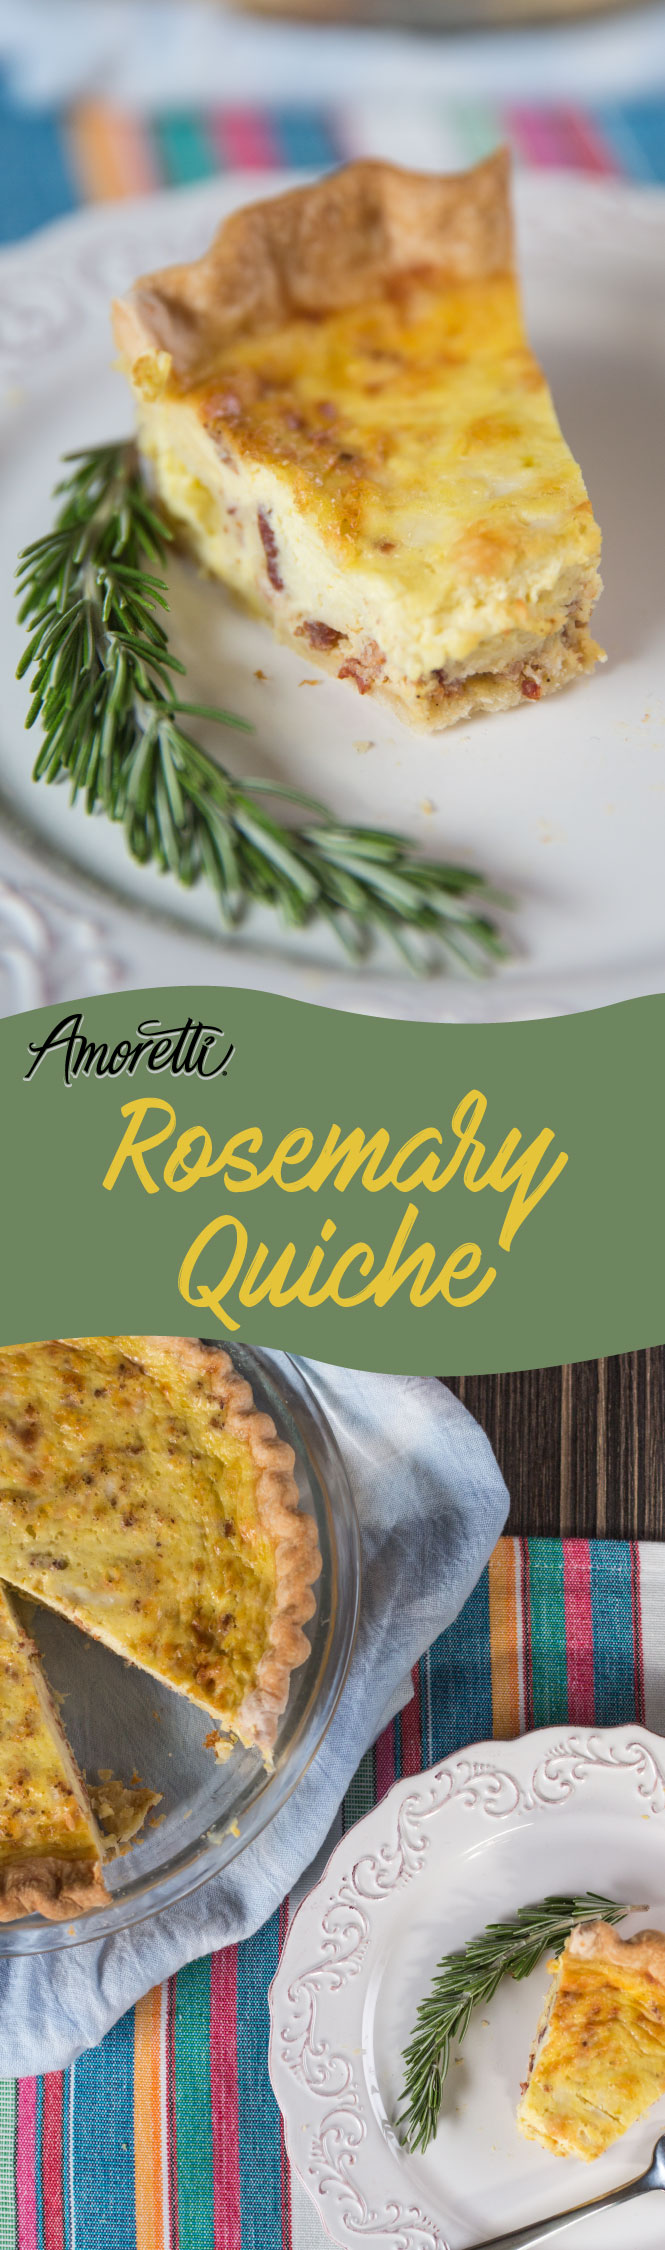 This morning make yourself a gourmet breakfast, a savory rosemary quiche!